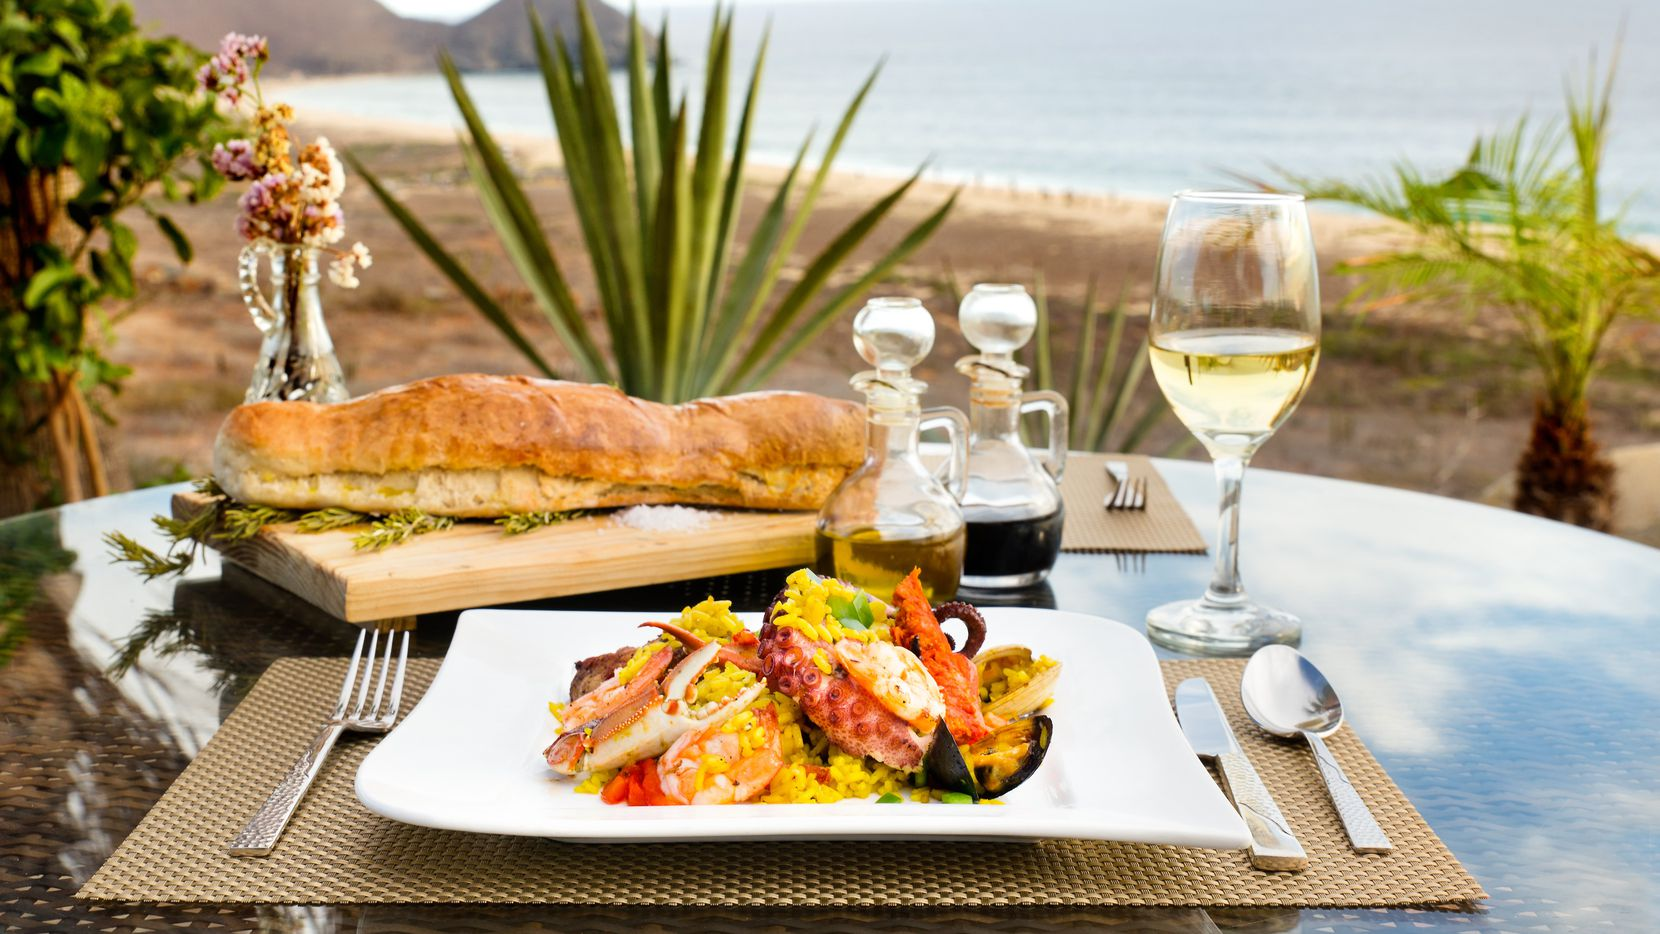 El Mirador boasts ocean views and tasty food.